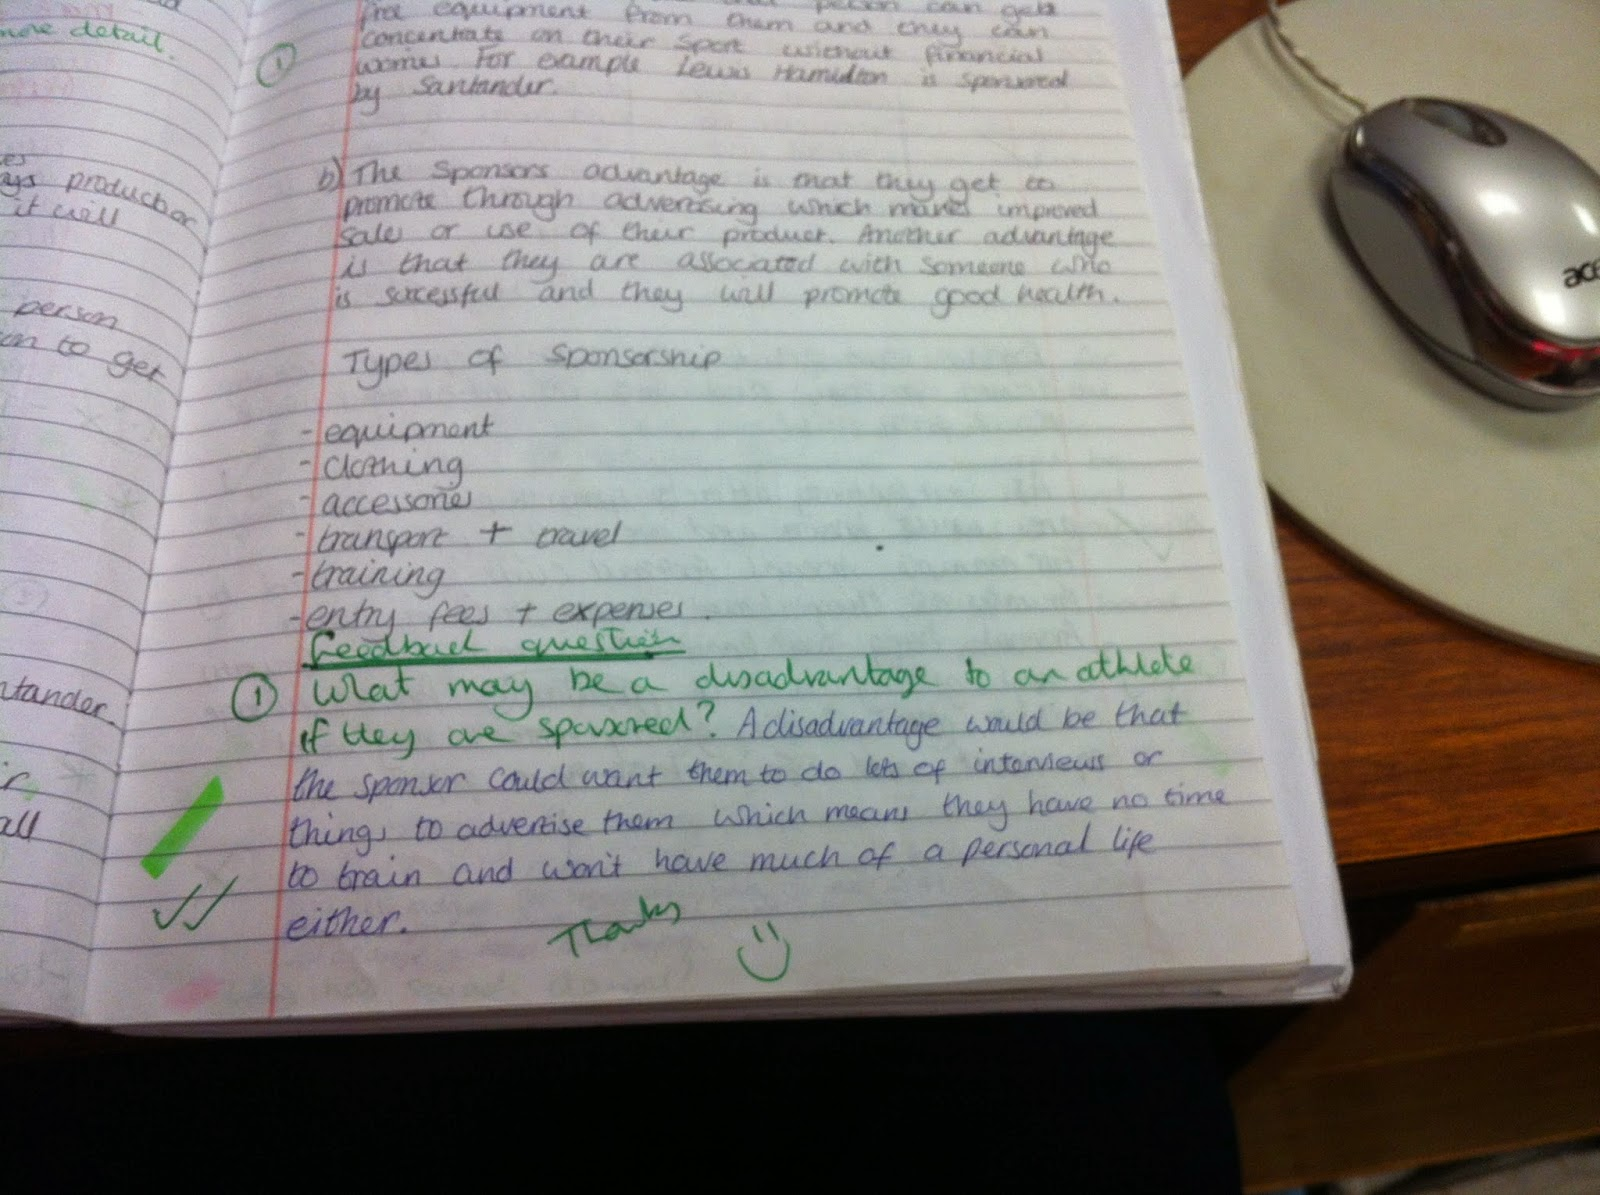 Can I be that little bit better at.....understanding why I might be getting differentiation wrong